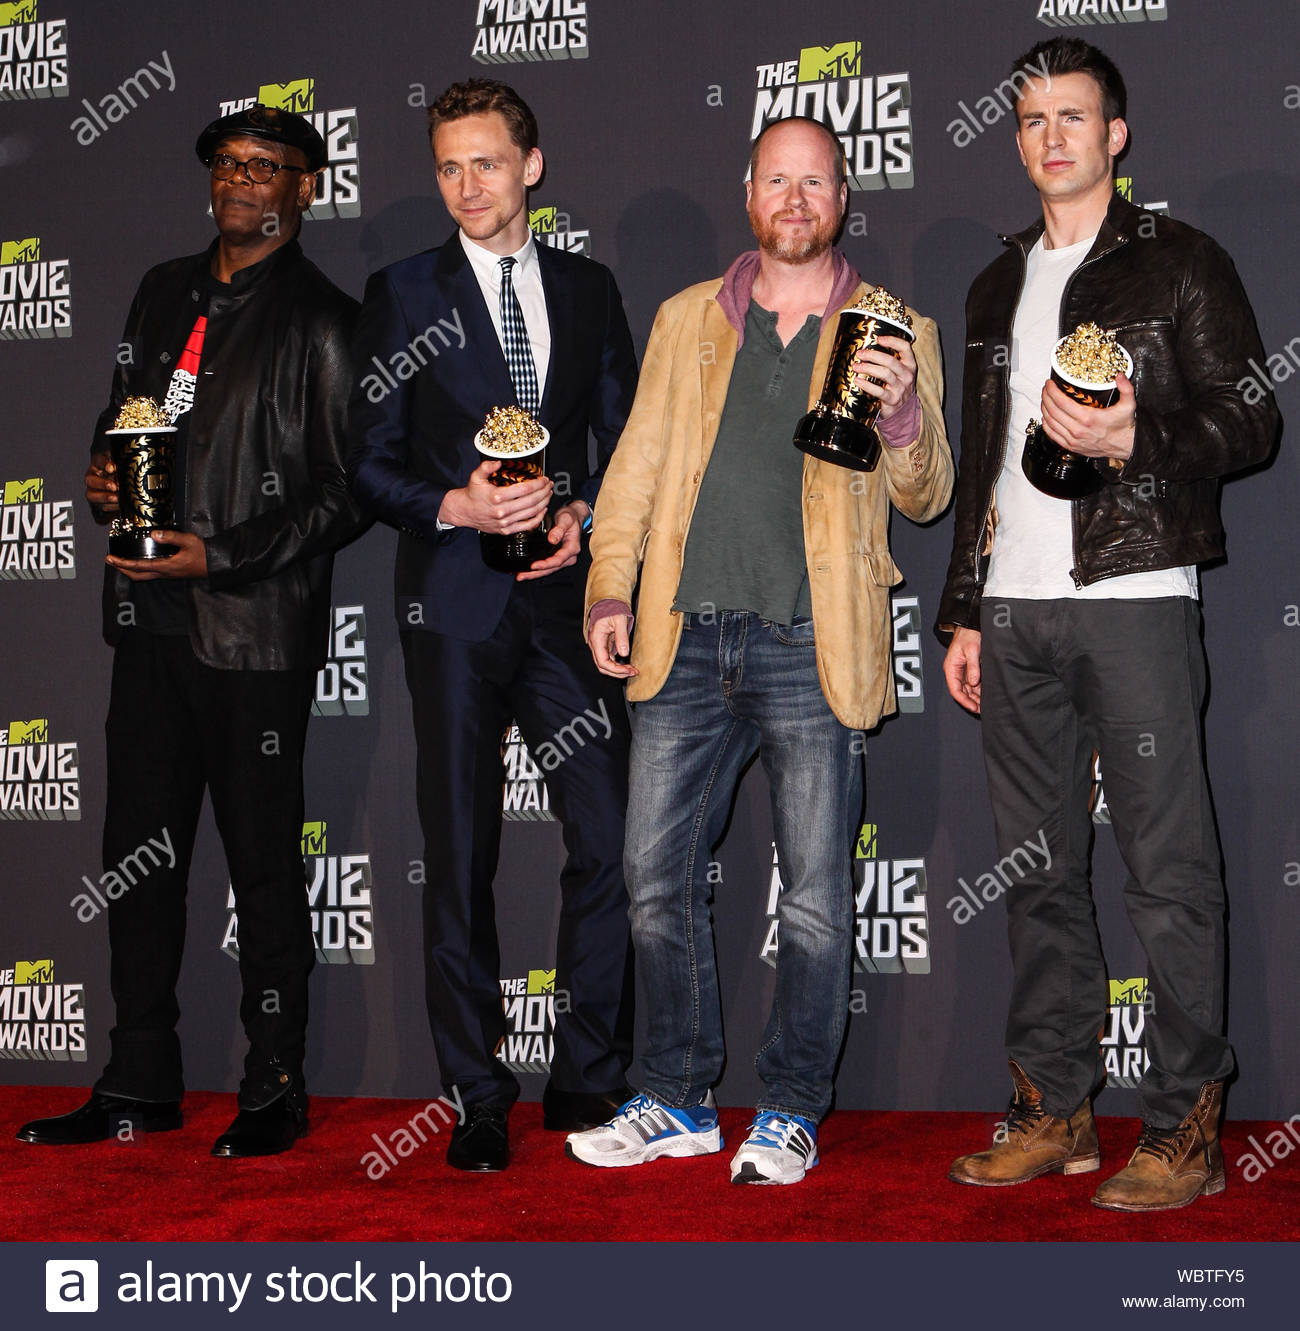 "Culver City, CA - Samuel L. Jackson and Tom Hiddleston, director Joss Whedon, and actor Chris Evans, winners of Movie of the Year for ""Marvel's The Avengers,"" poses in the press room during the 2013 MTV Movie Awards held at Sony Pictures Studios. AKM-GSI, April 14, 2013 Stock Photo"